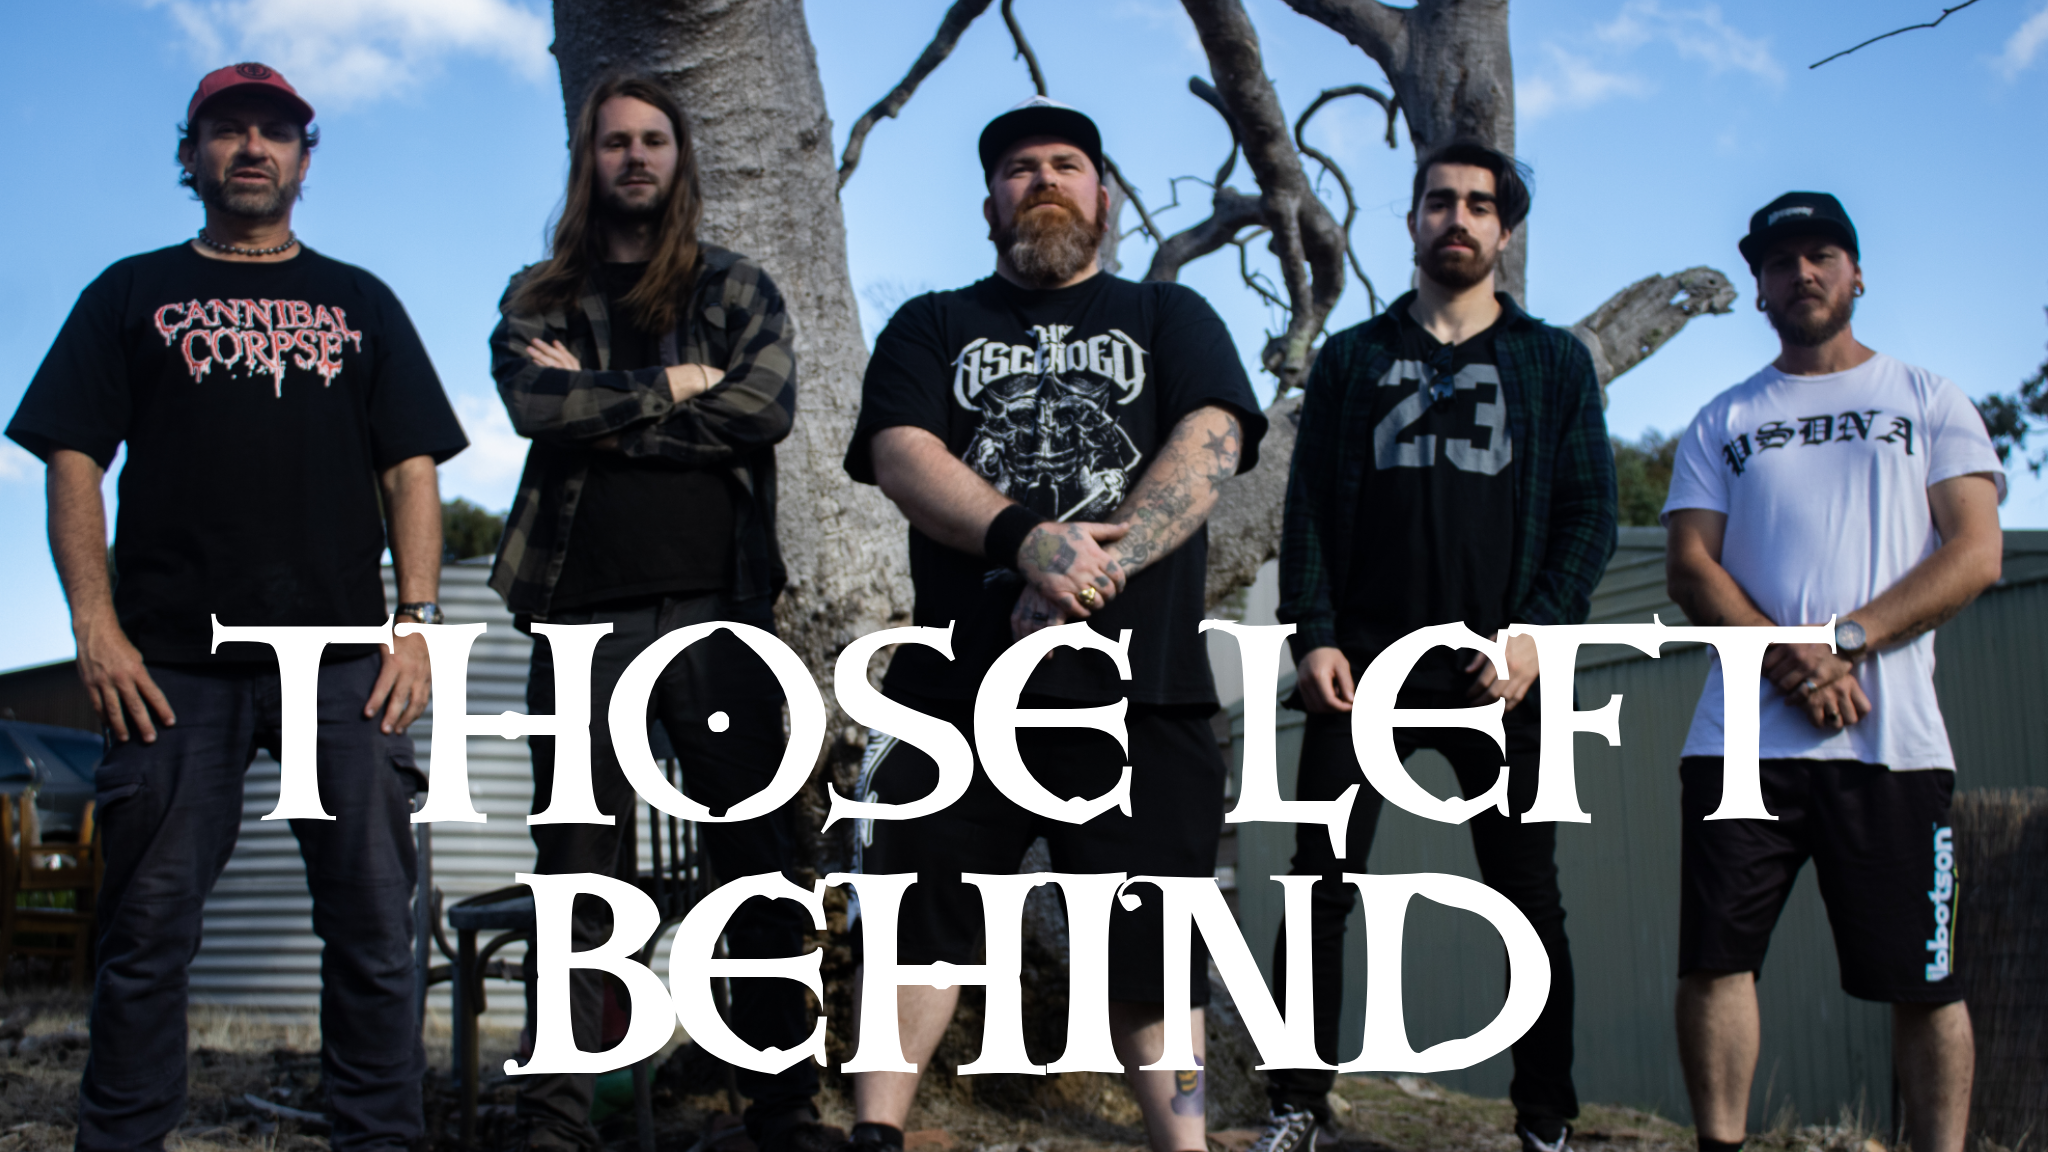 THOSE LEFT BEHIND release new video.